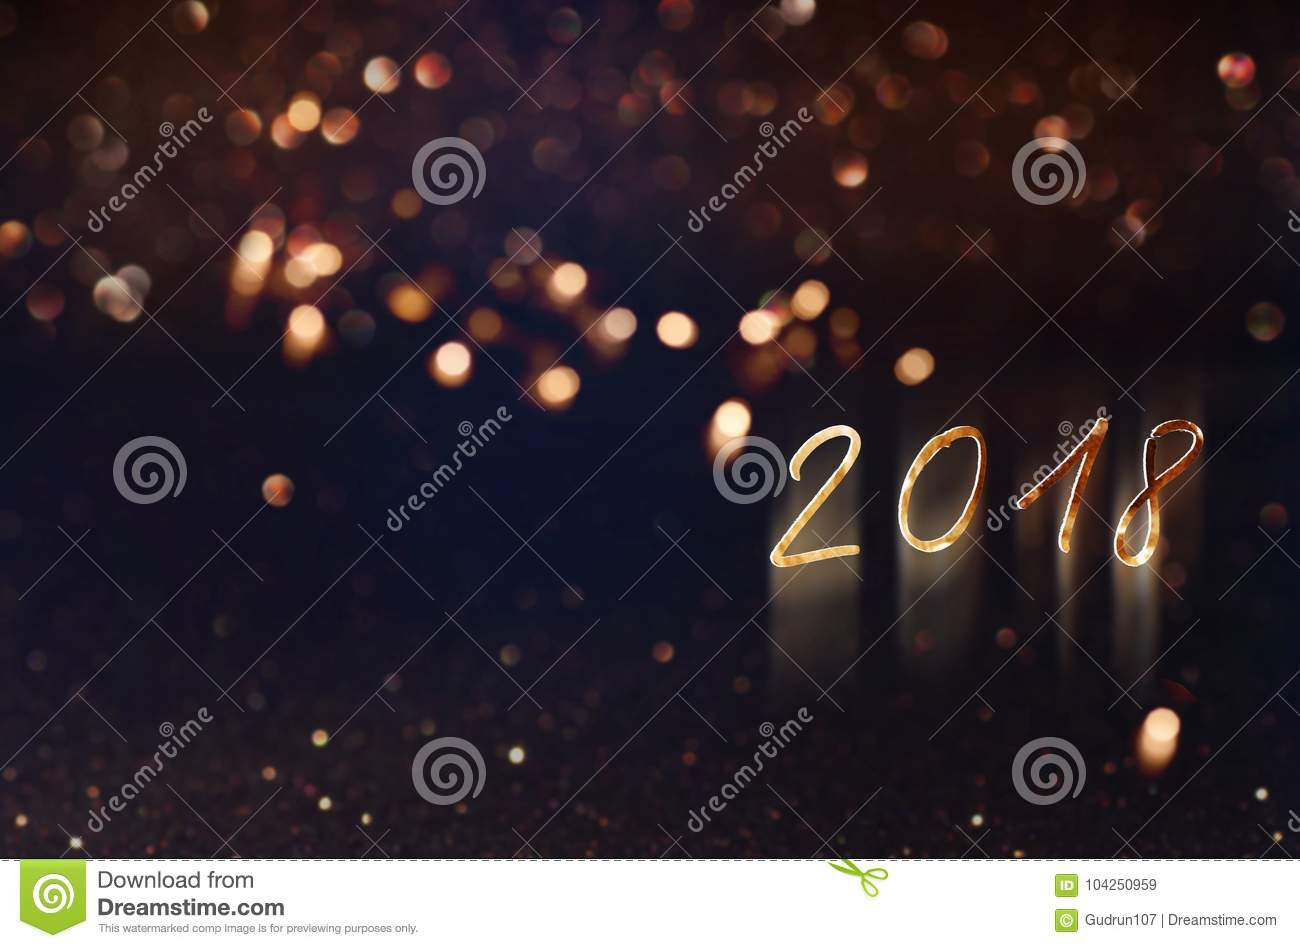 Festive bokeh background for new year 2018